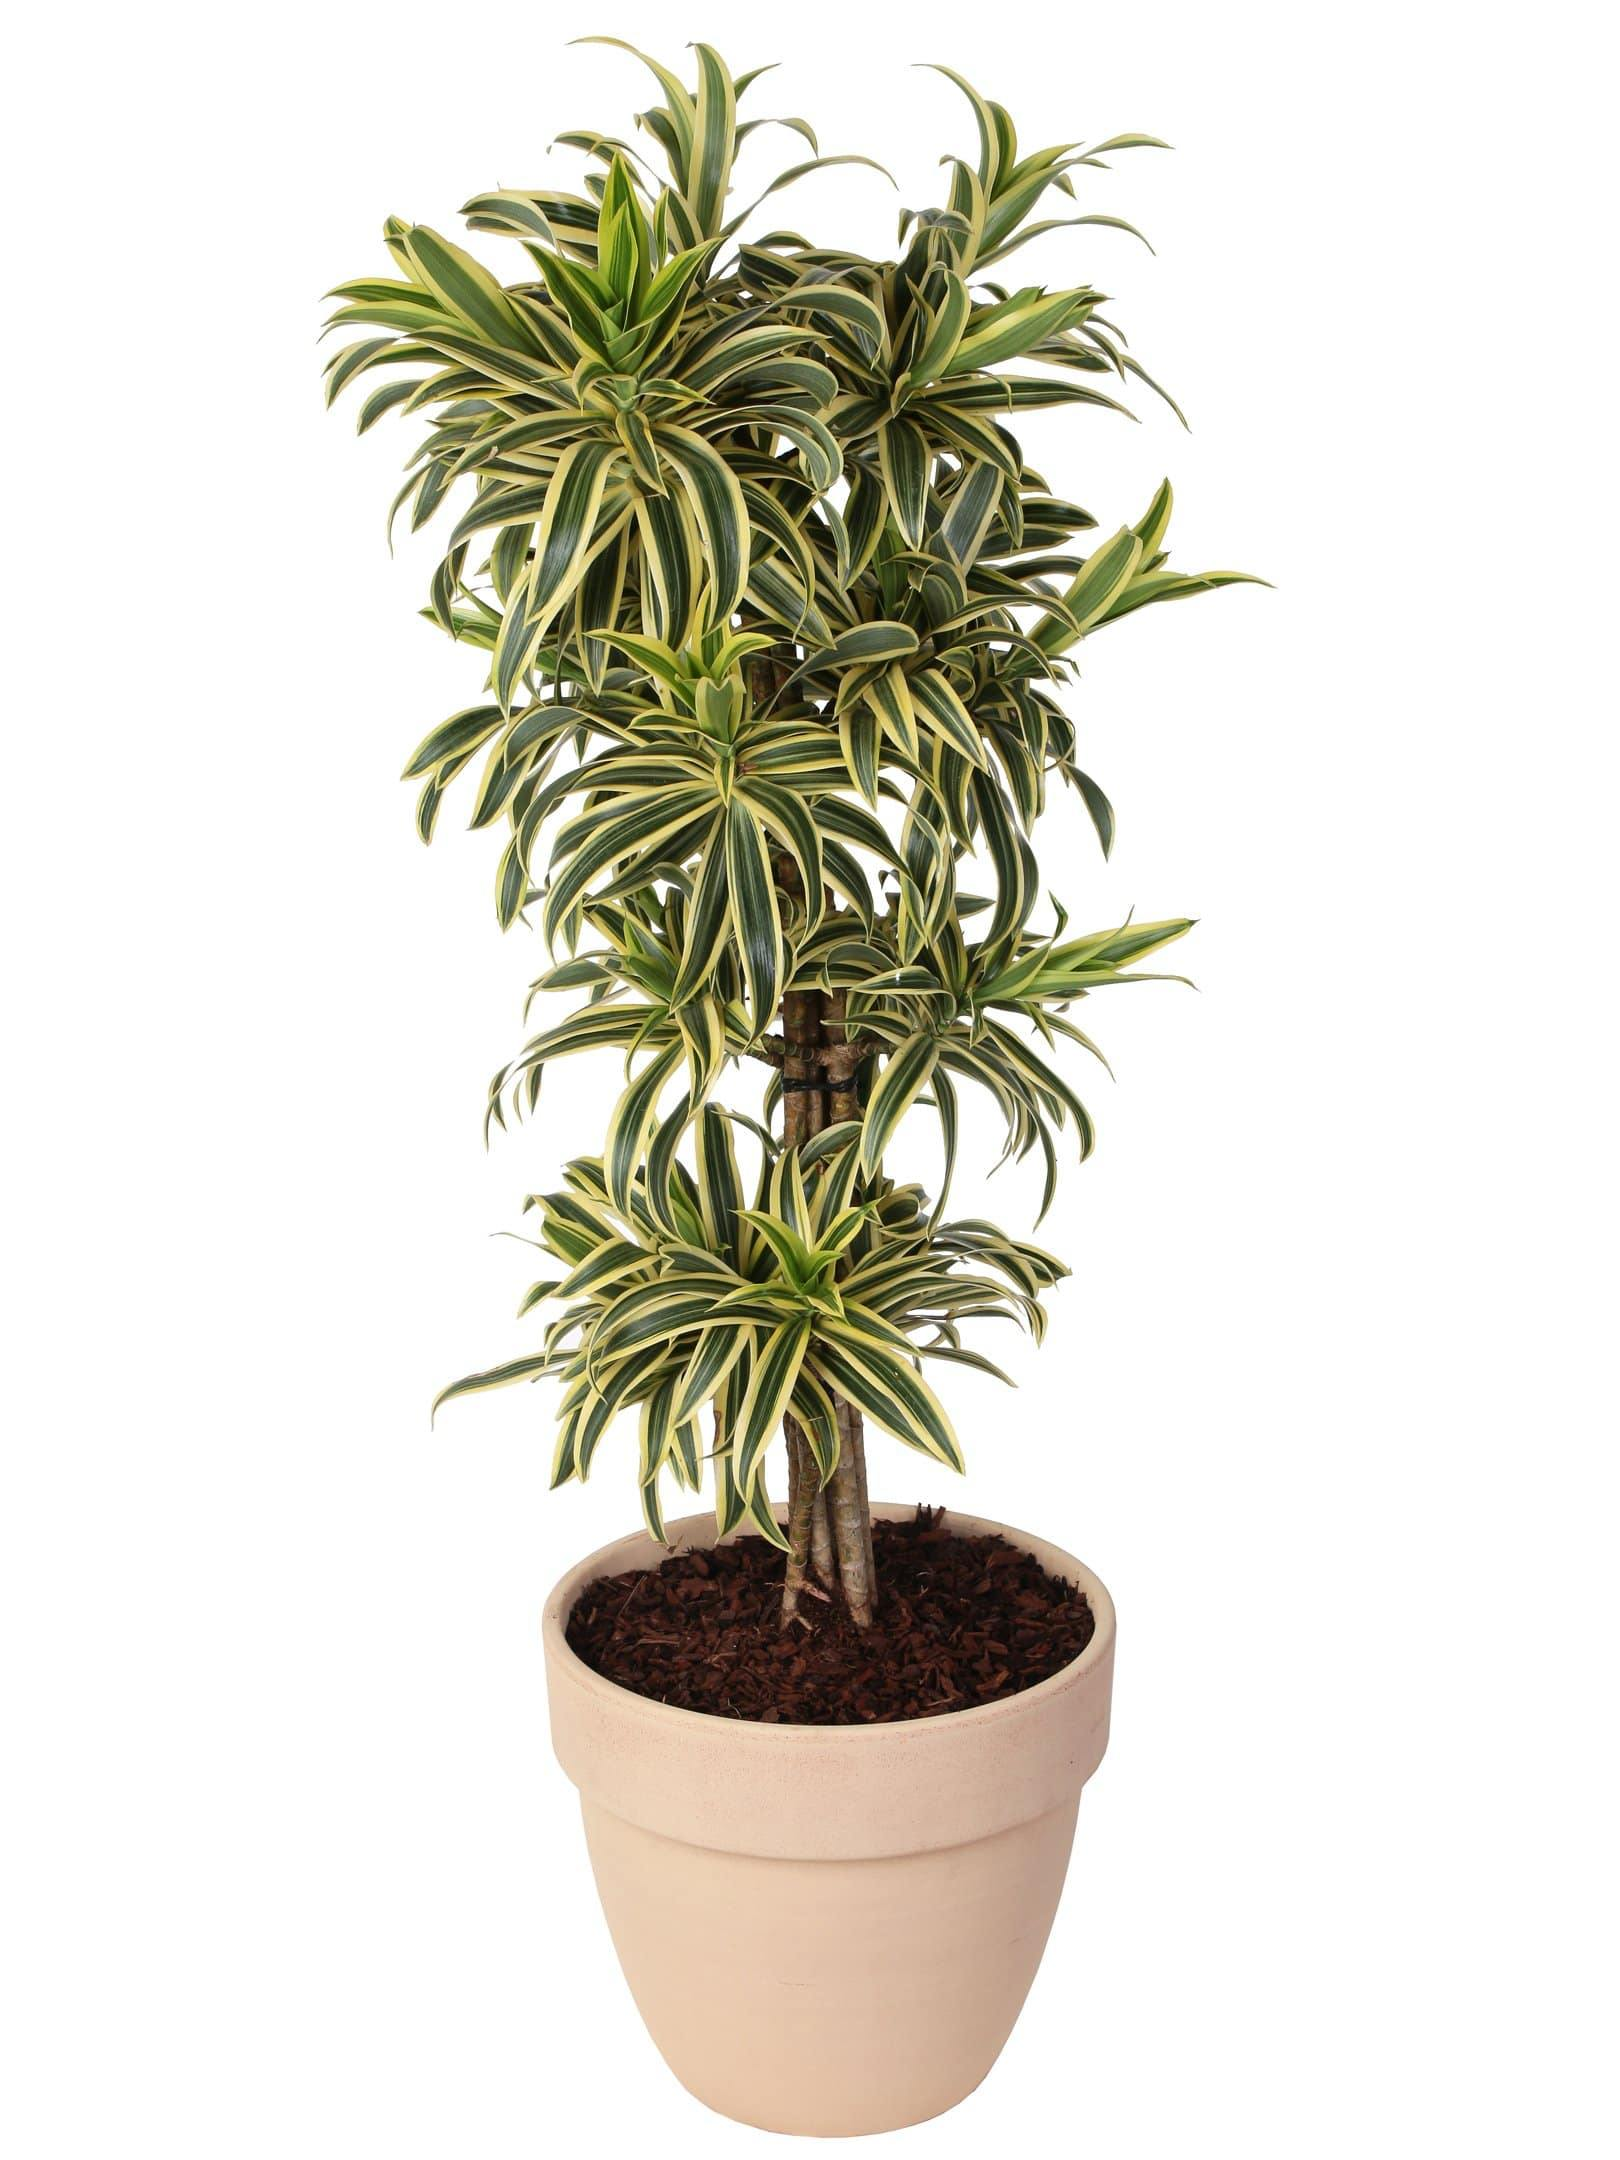 Dracaena Reflexa Pleomele Song of India in vaso terracotta altezza 120 cm. - Casita Hermosa